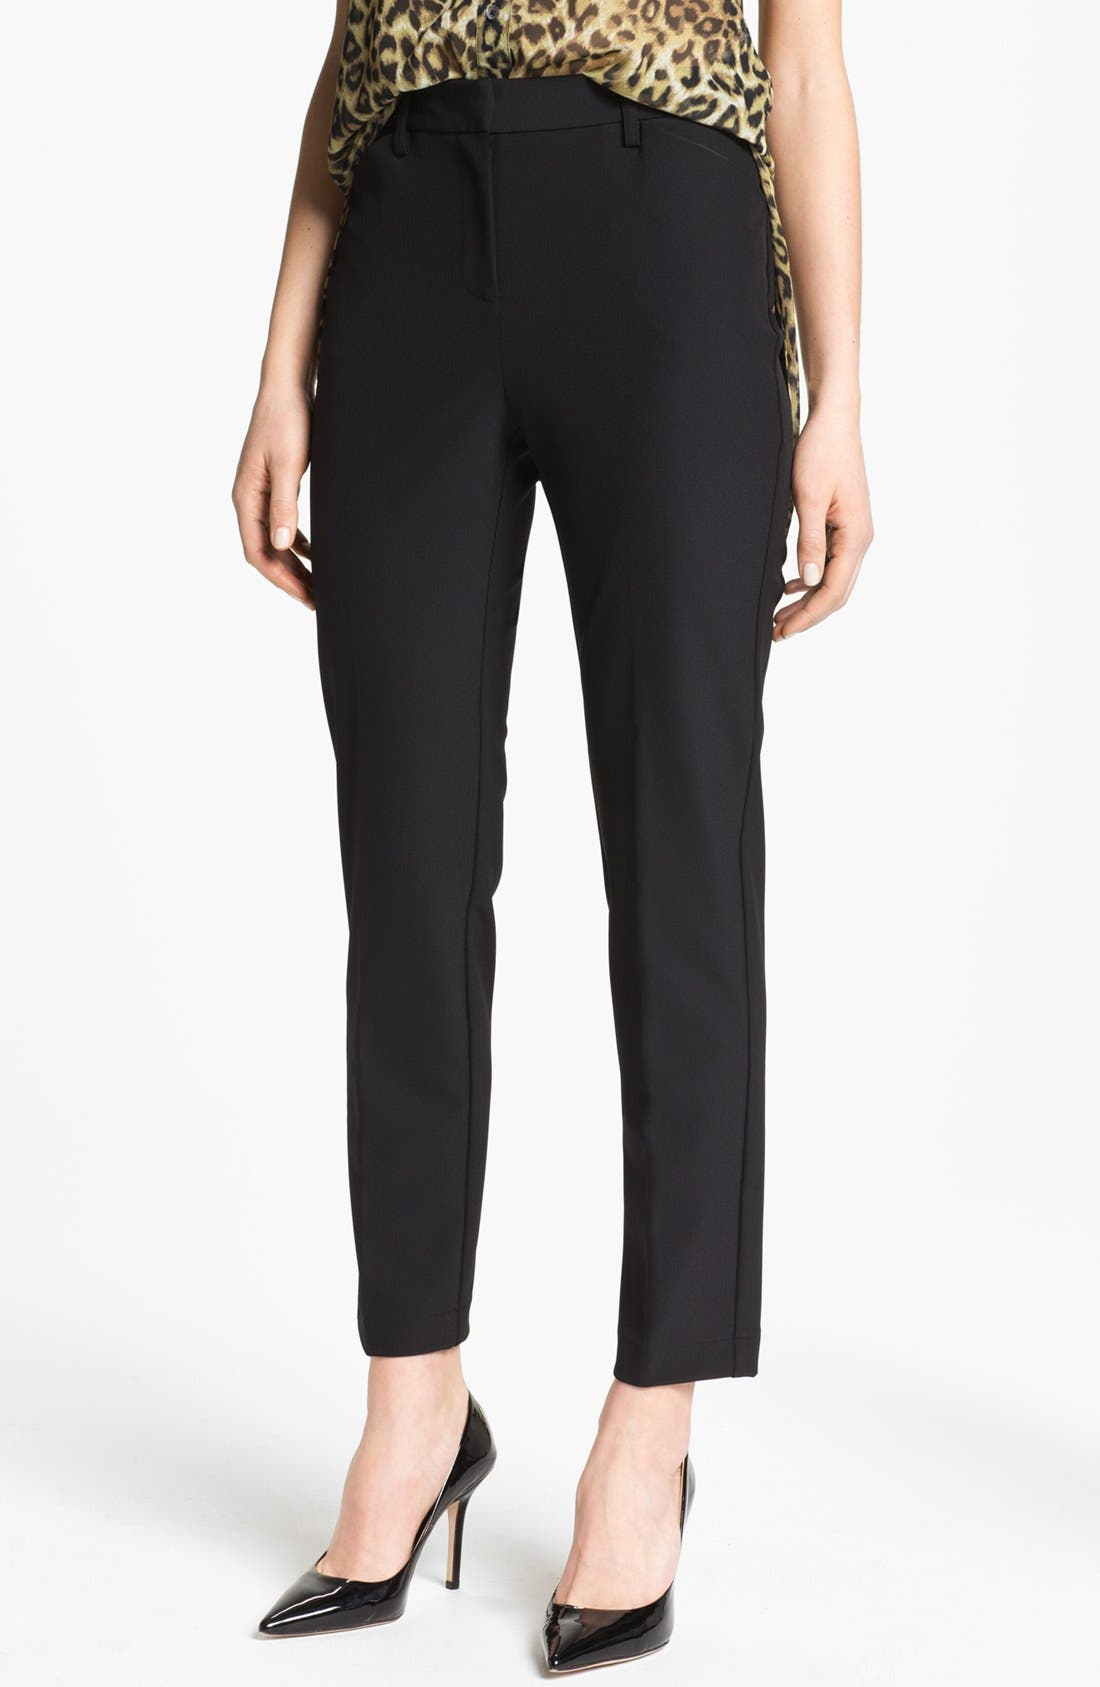 Main Image - Kenneth Cole New York 'Brielle' Pants